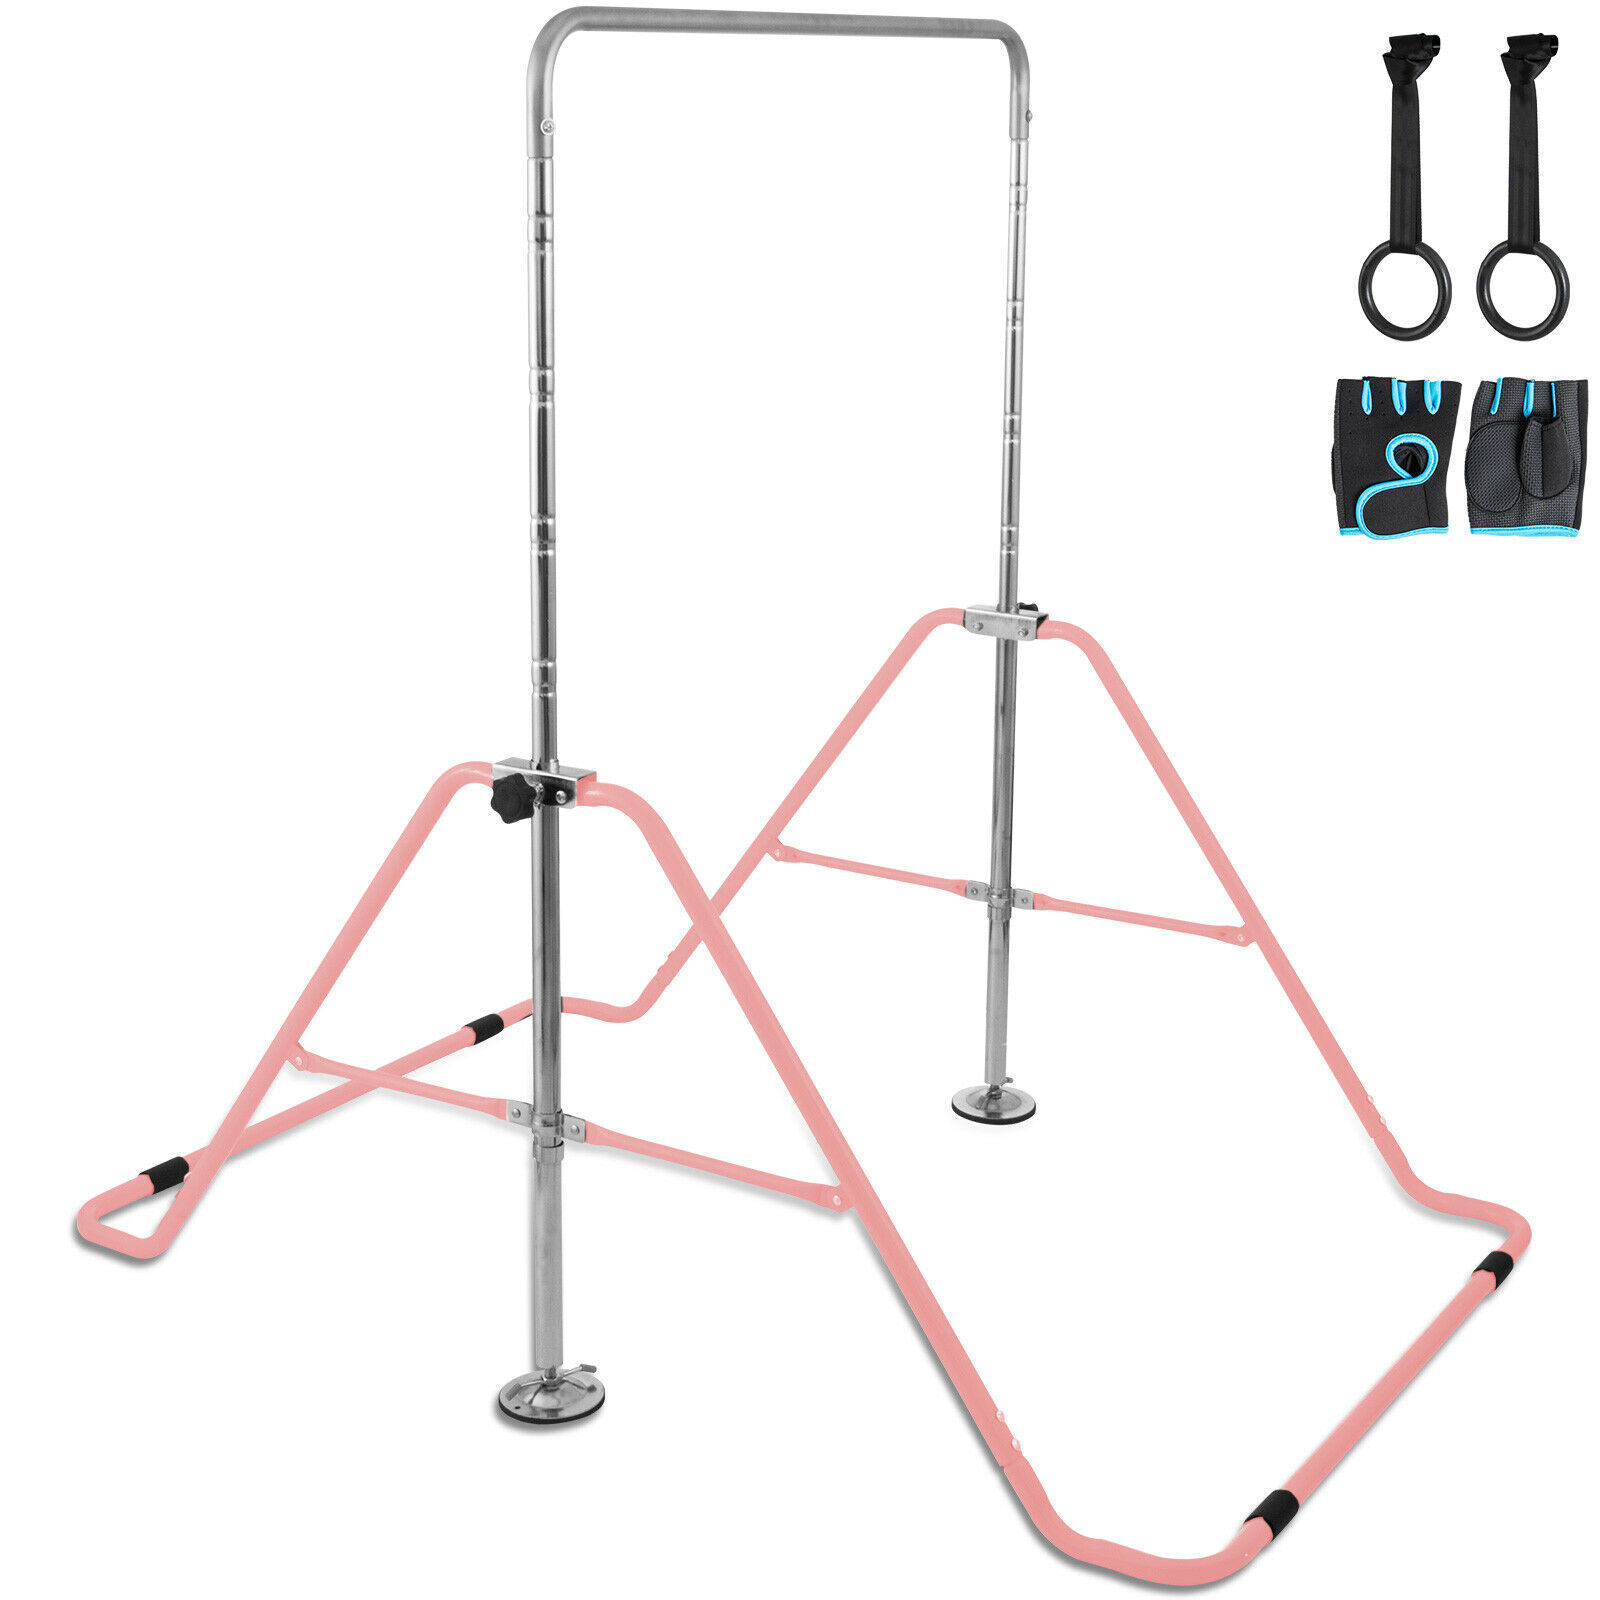 VEVOR Kids Adjustable Gymnastics Horizontal Bar 130LBS Kip Bar Climbing Tower Gym